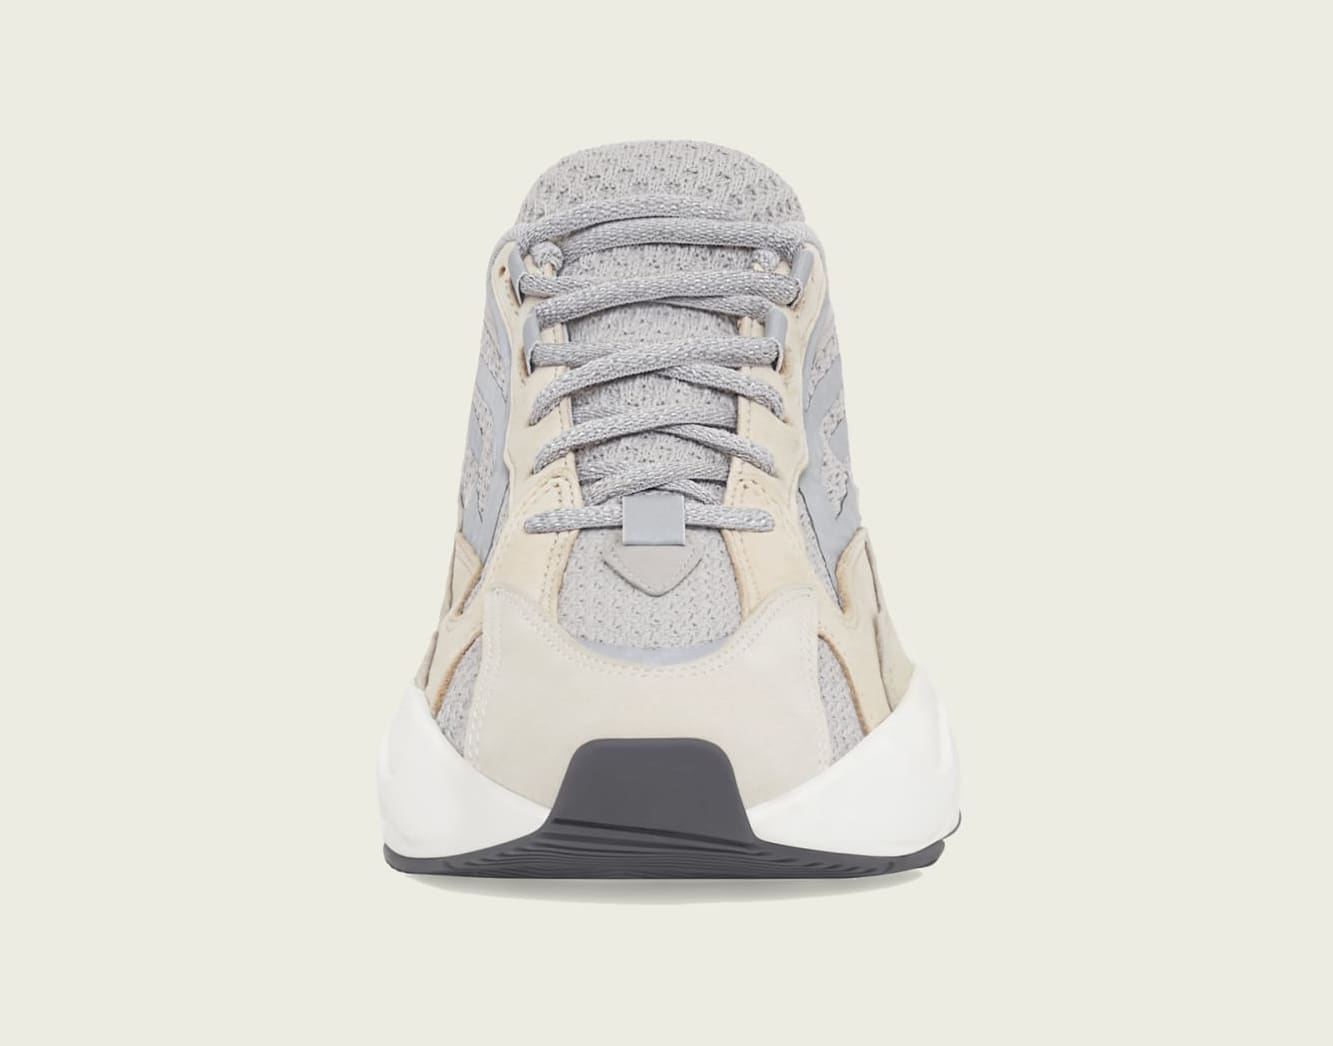 Adidas Yeezy Boost 700 V2 'Cream' GY7924 Front